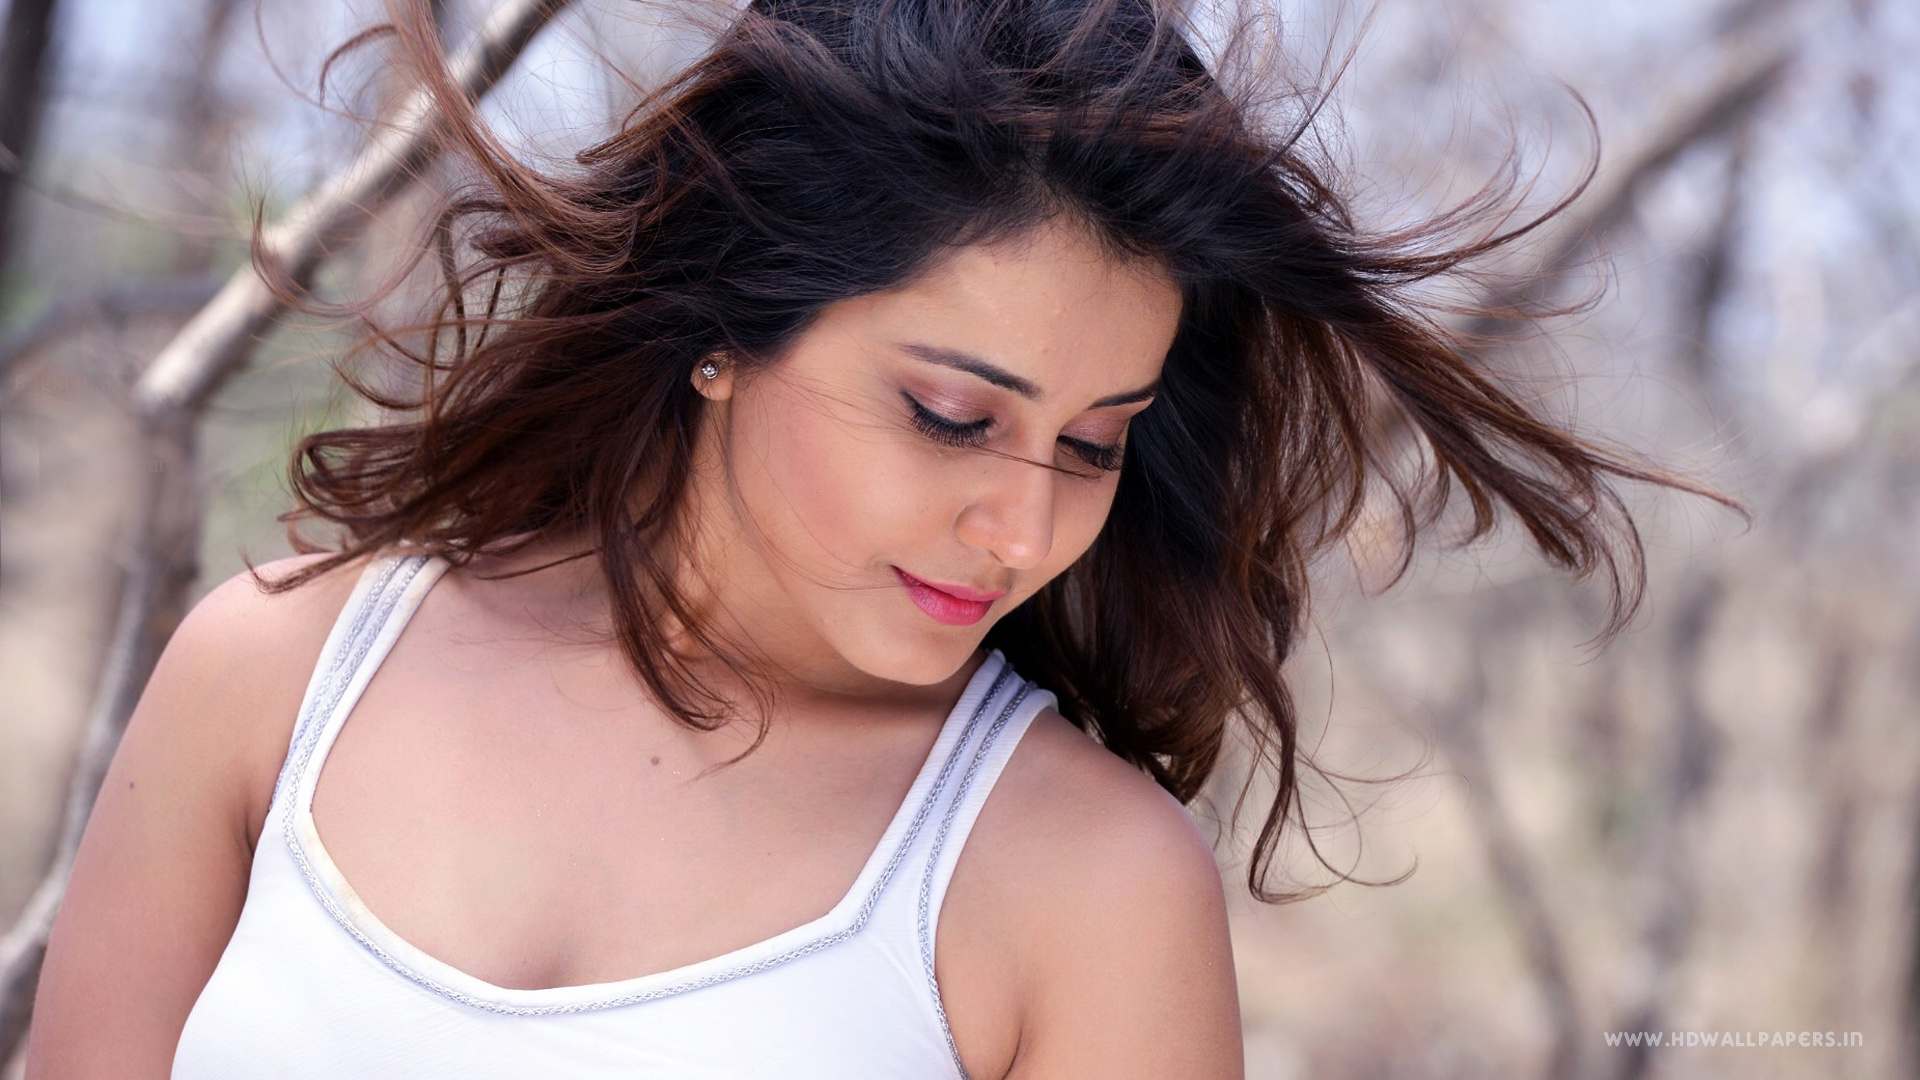 Mithai (2018) songs free download – naasong. Org.